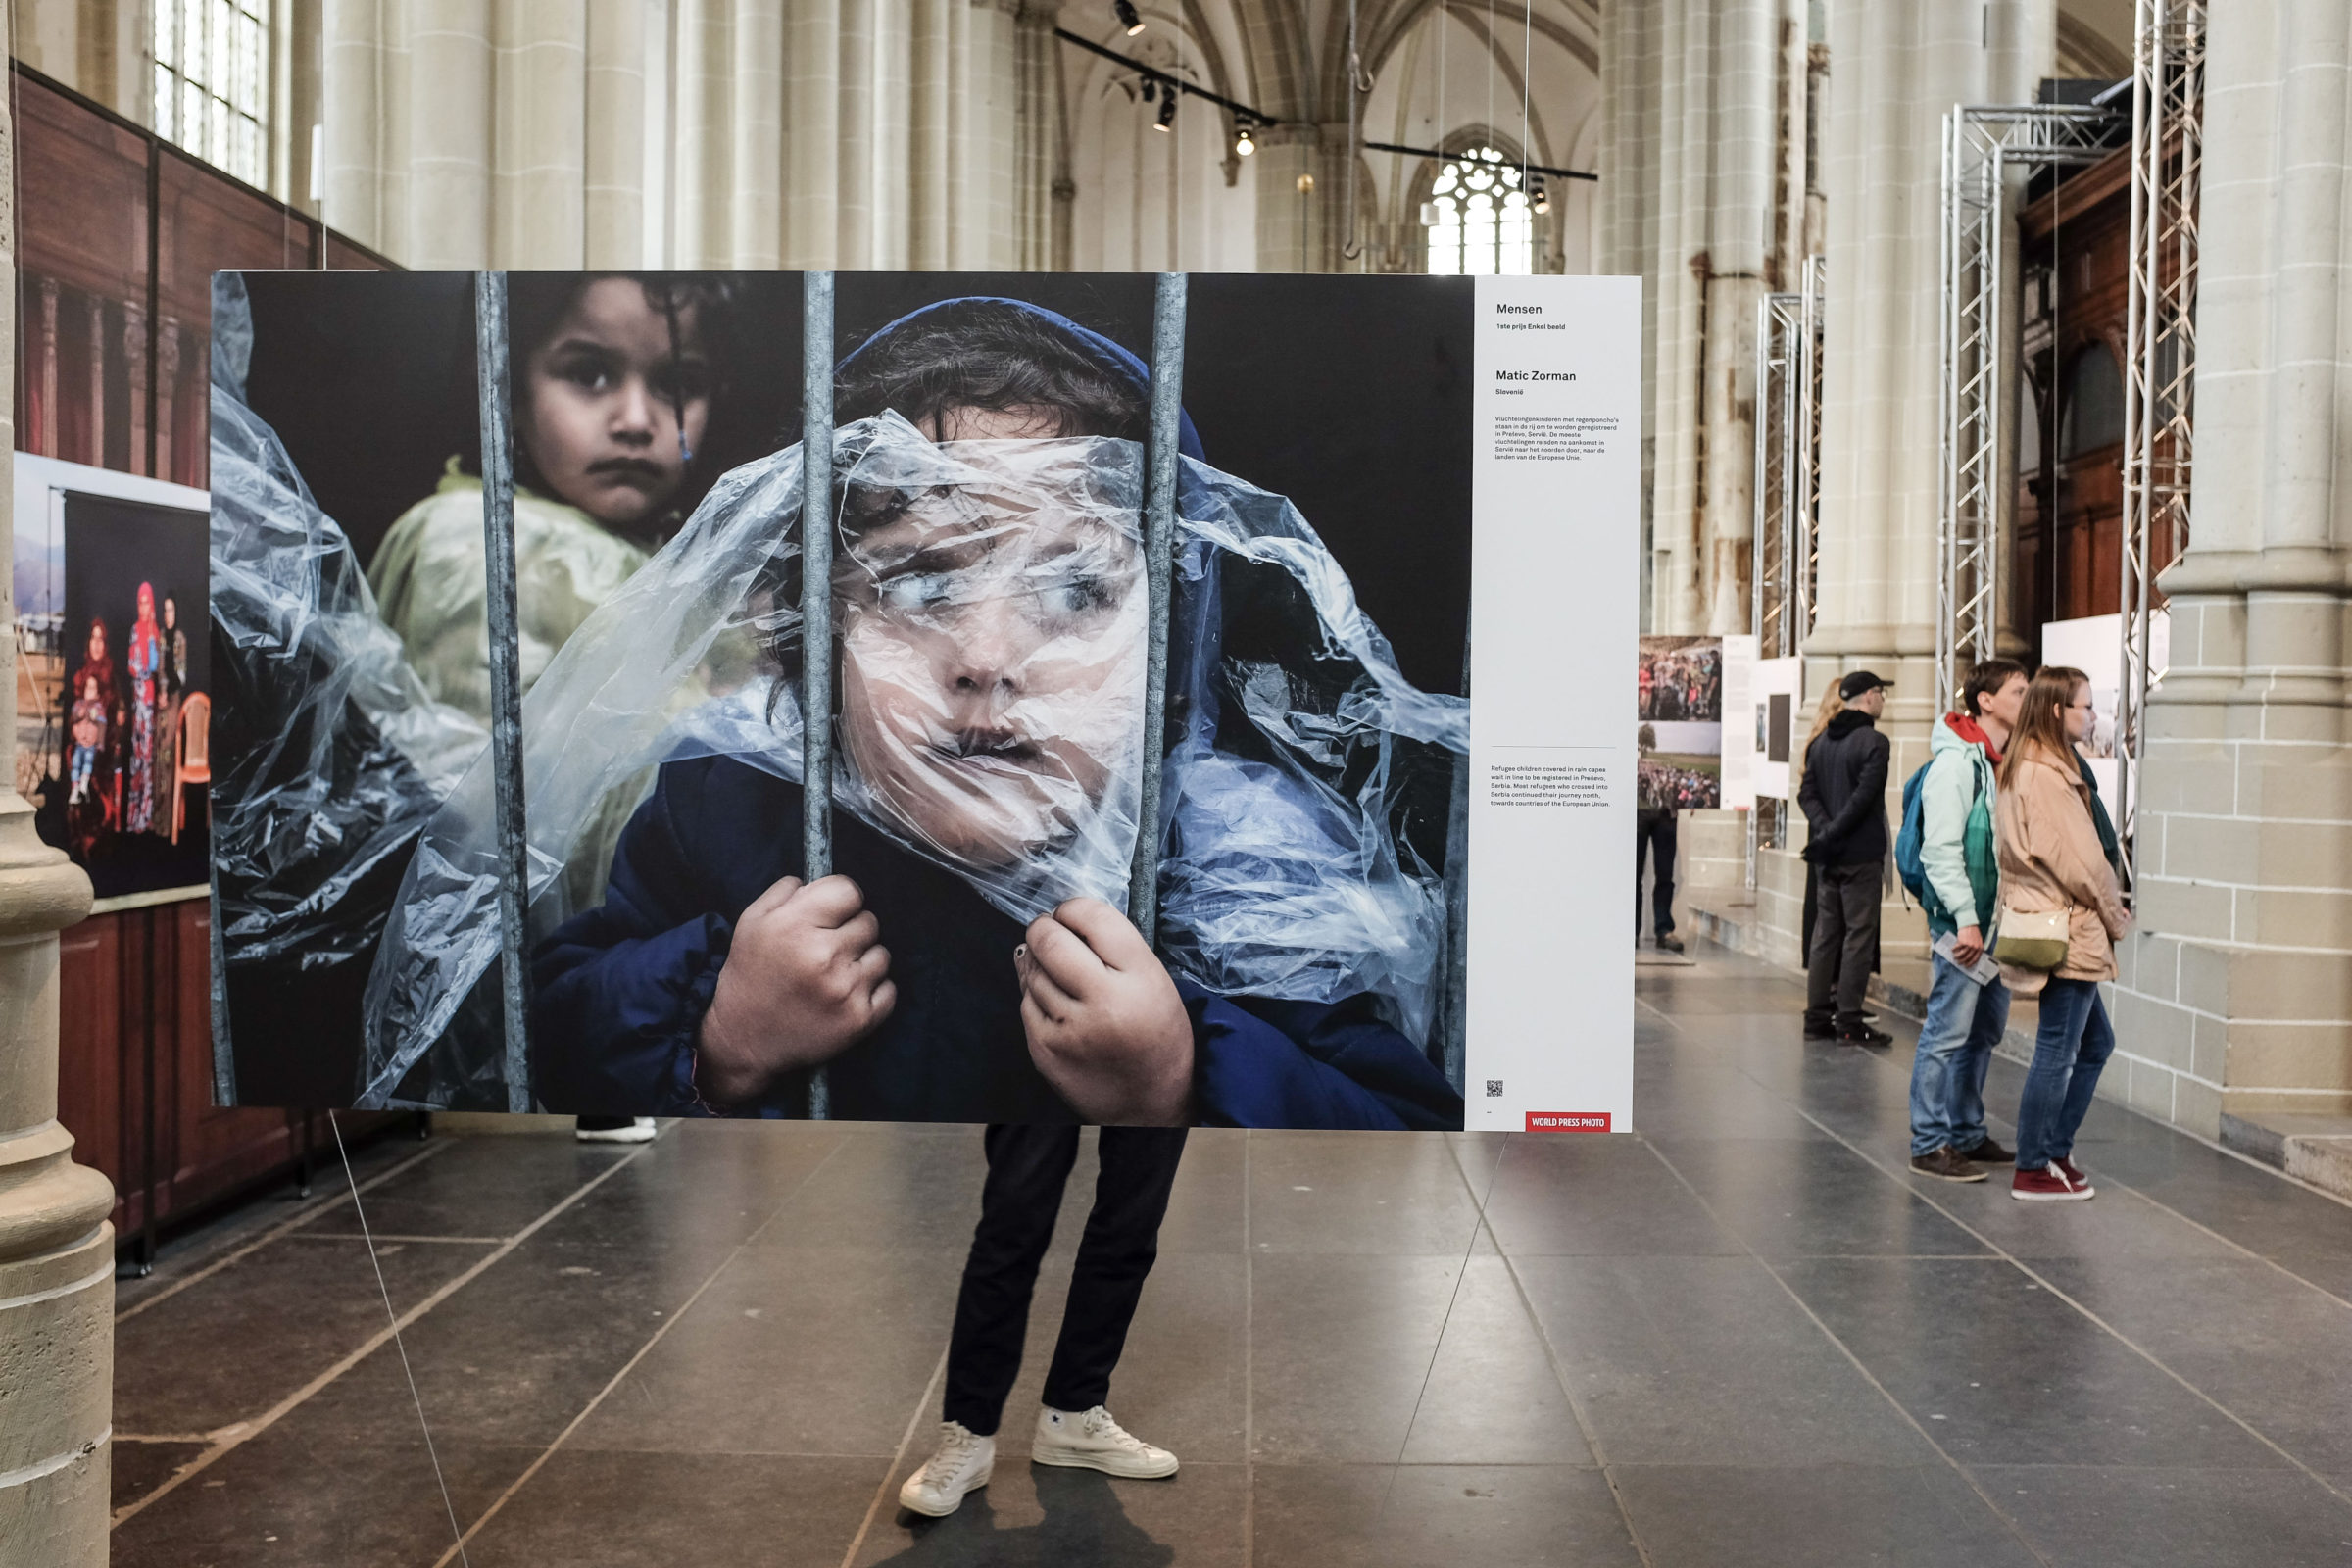 Vluchtelingen is het grote thema bij de World Press Photo 2016 in Amsterdam